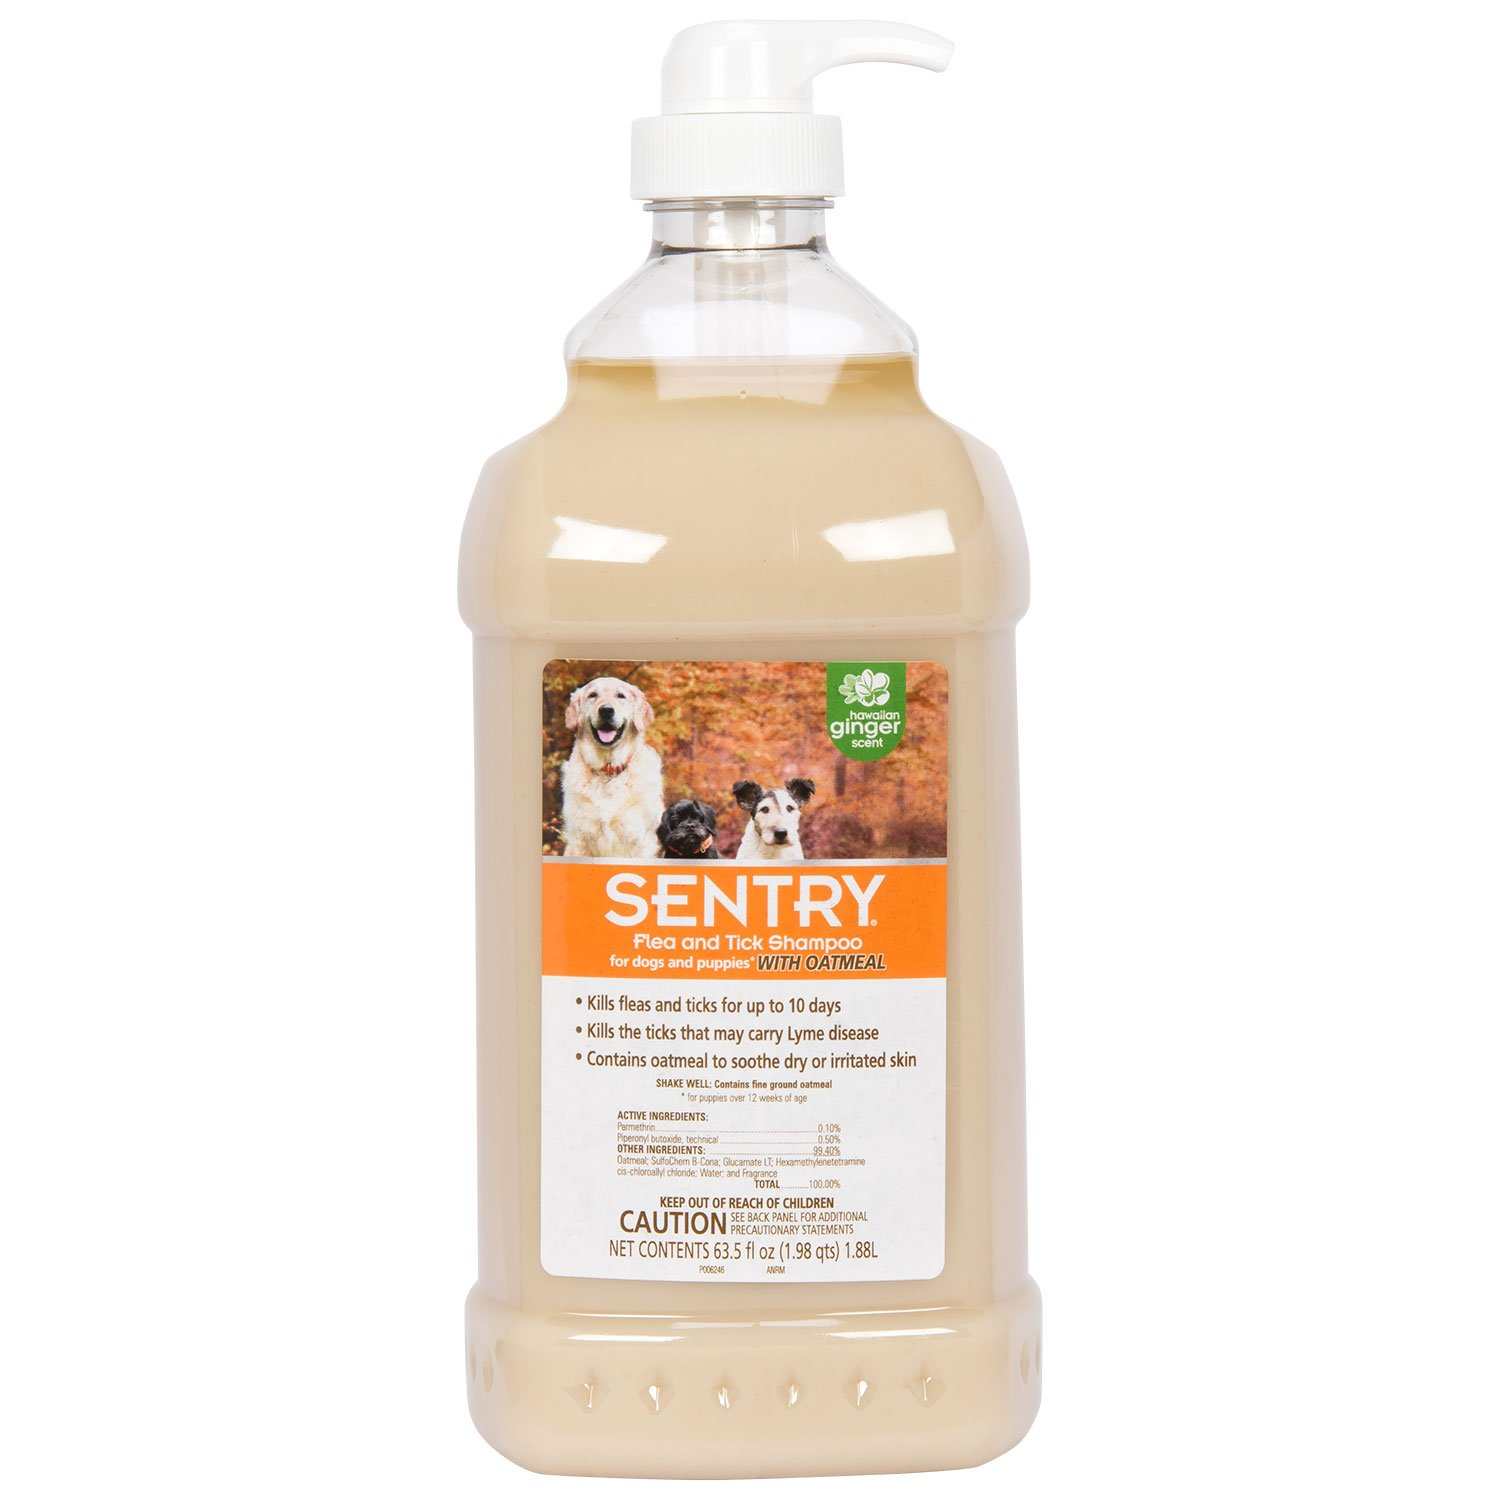 SENTRY Oatmeal Flea and Tick Shampoo for Dogs, Rid Your Dog of Fleas, Ticks, and Other Pests, Hawaii Ginger Scent, 63.5 oz by SENTRY Pet Care